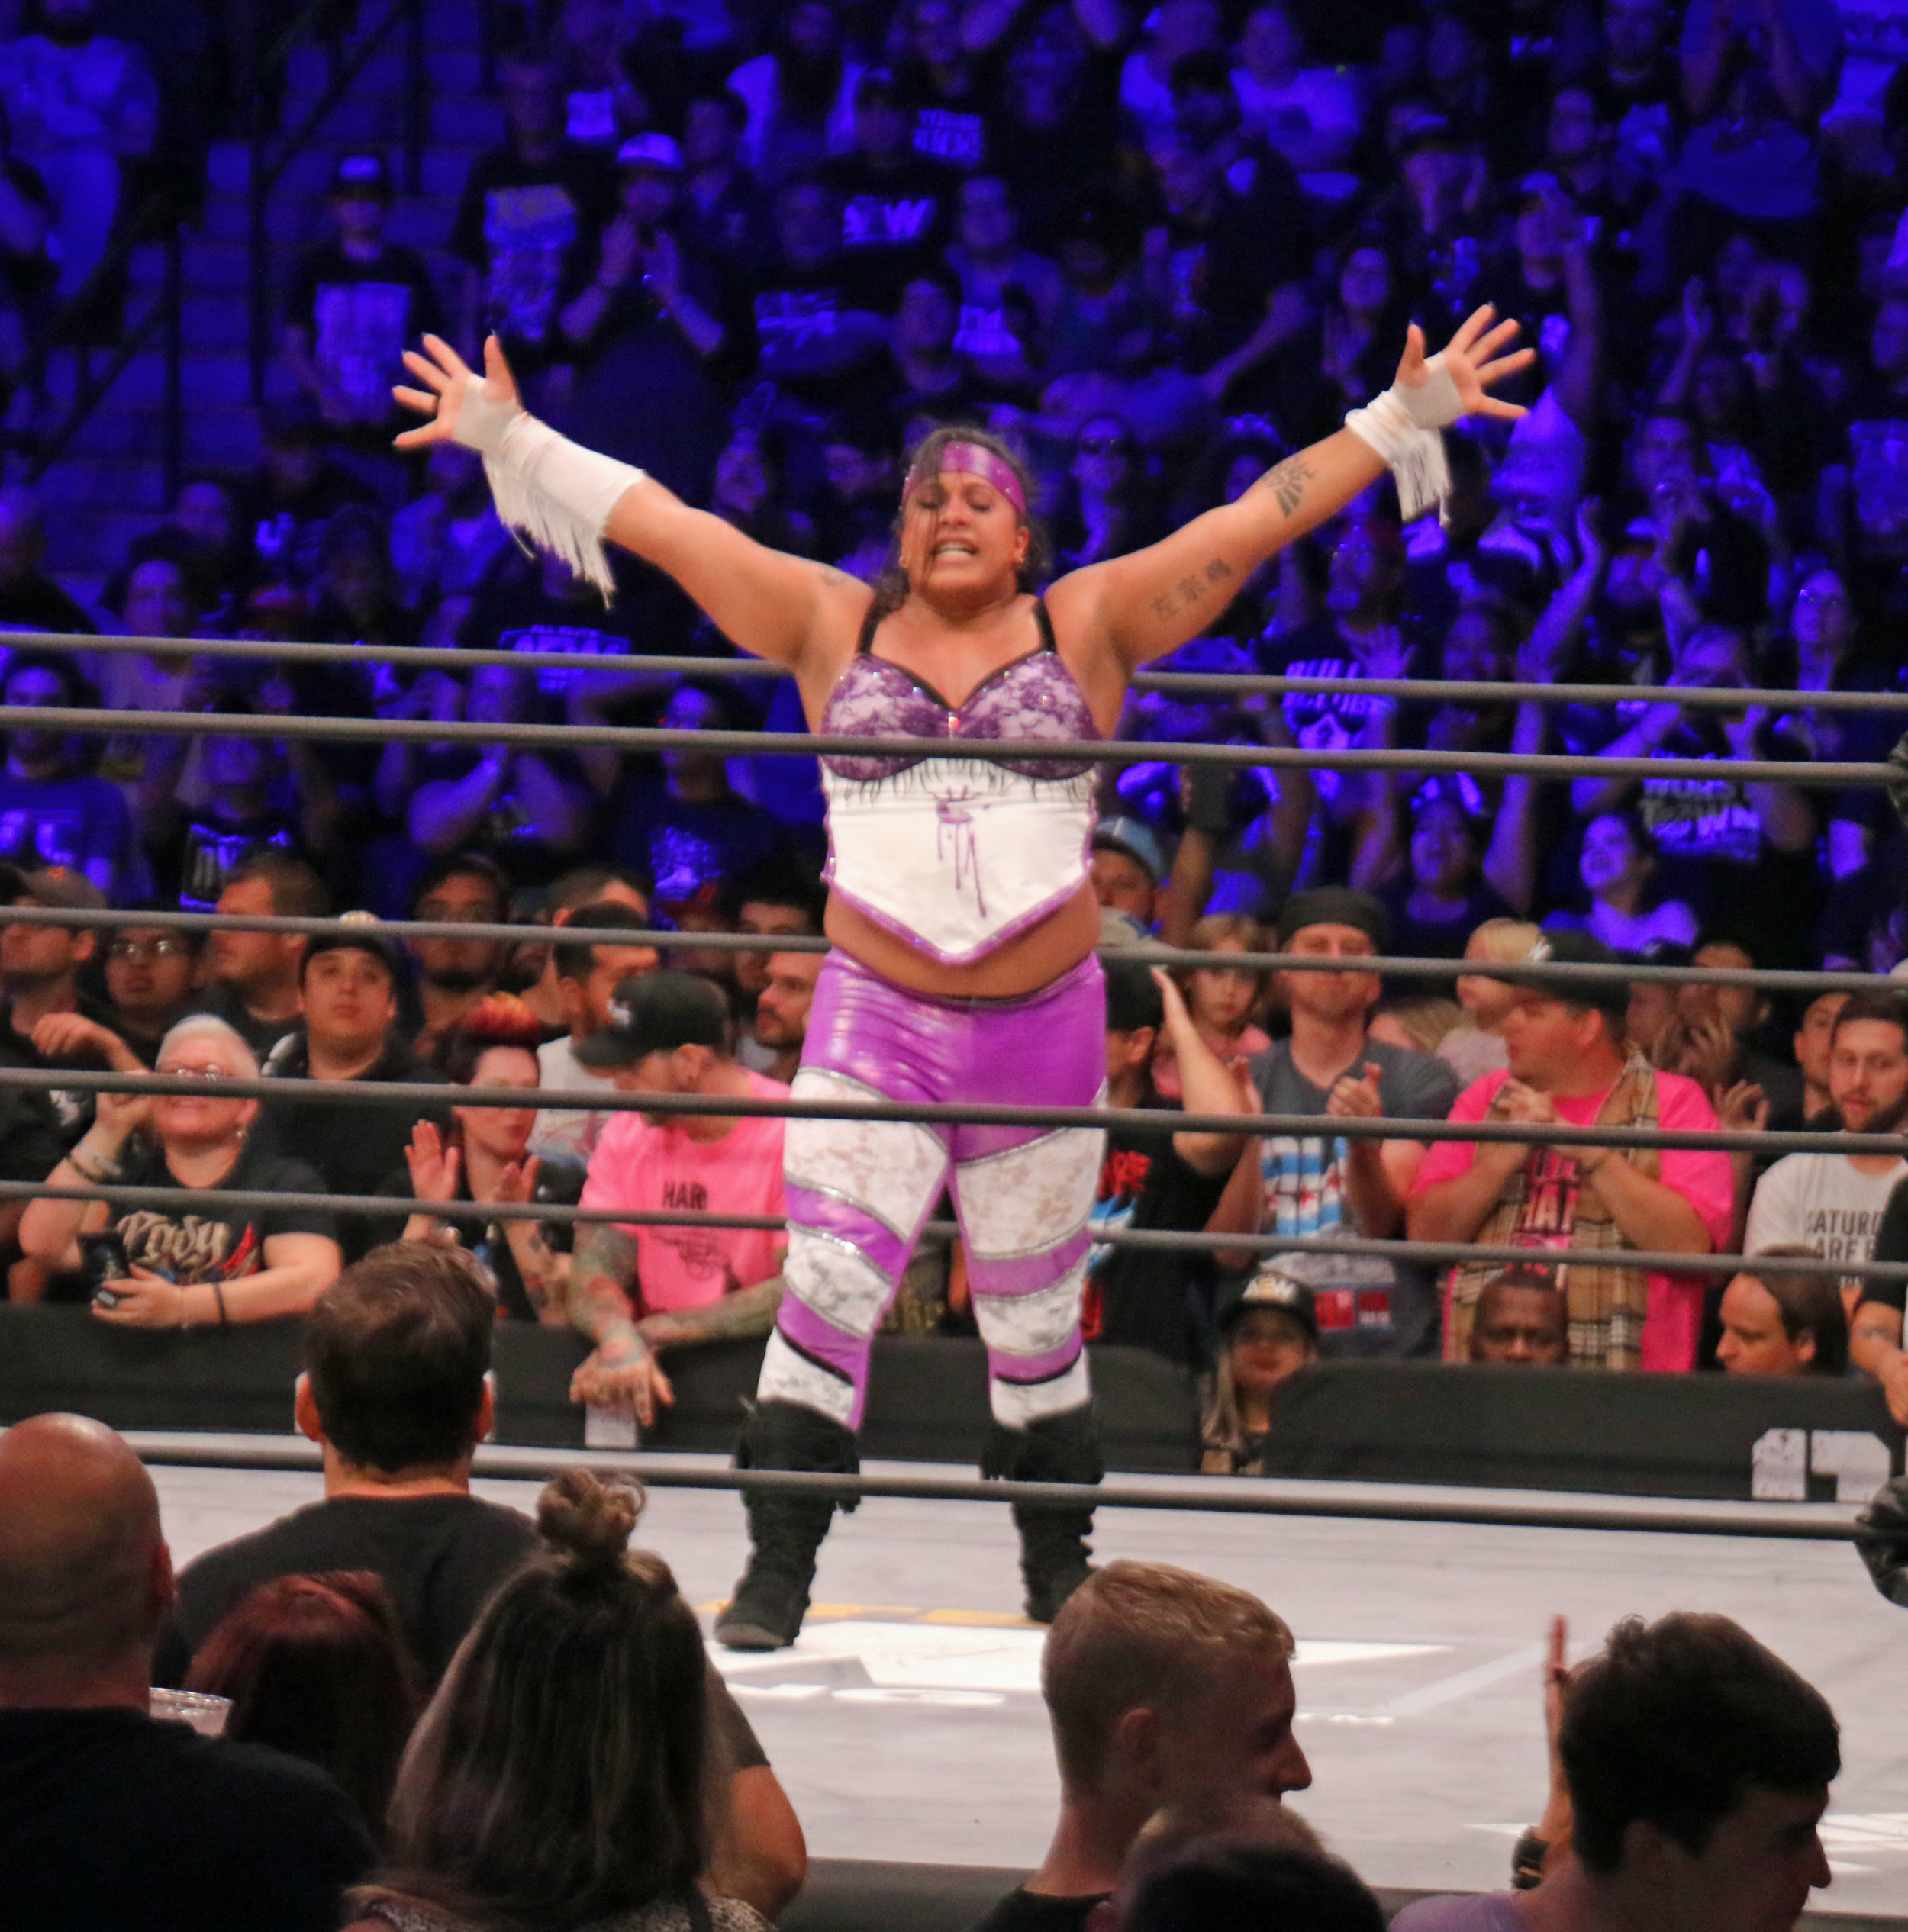 """Nyla Rose celebrates her victory in the Women's Casino Battle Royale on the """"Buy In"""" kickoff show. She will face Riho for the AEW Women's Championship on Oct. 2  (Photo by Mike Pankow)"""